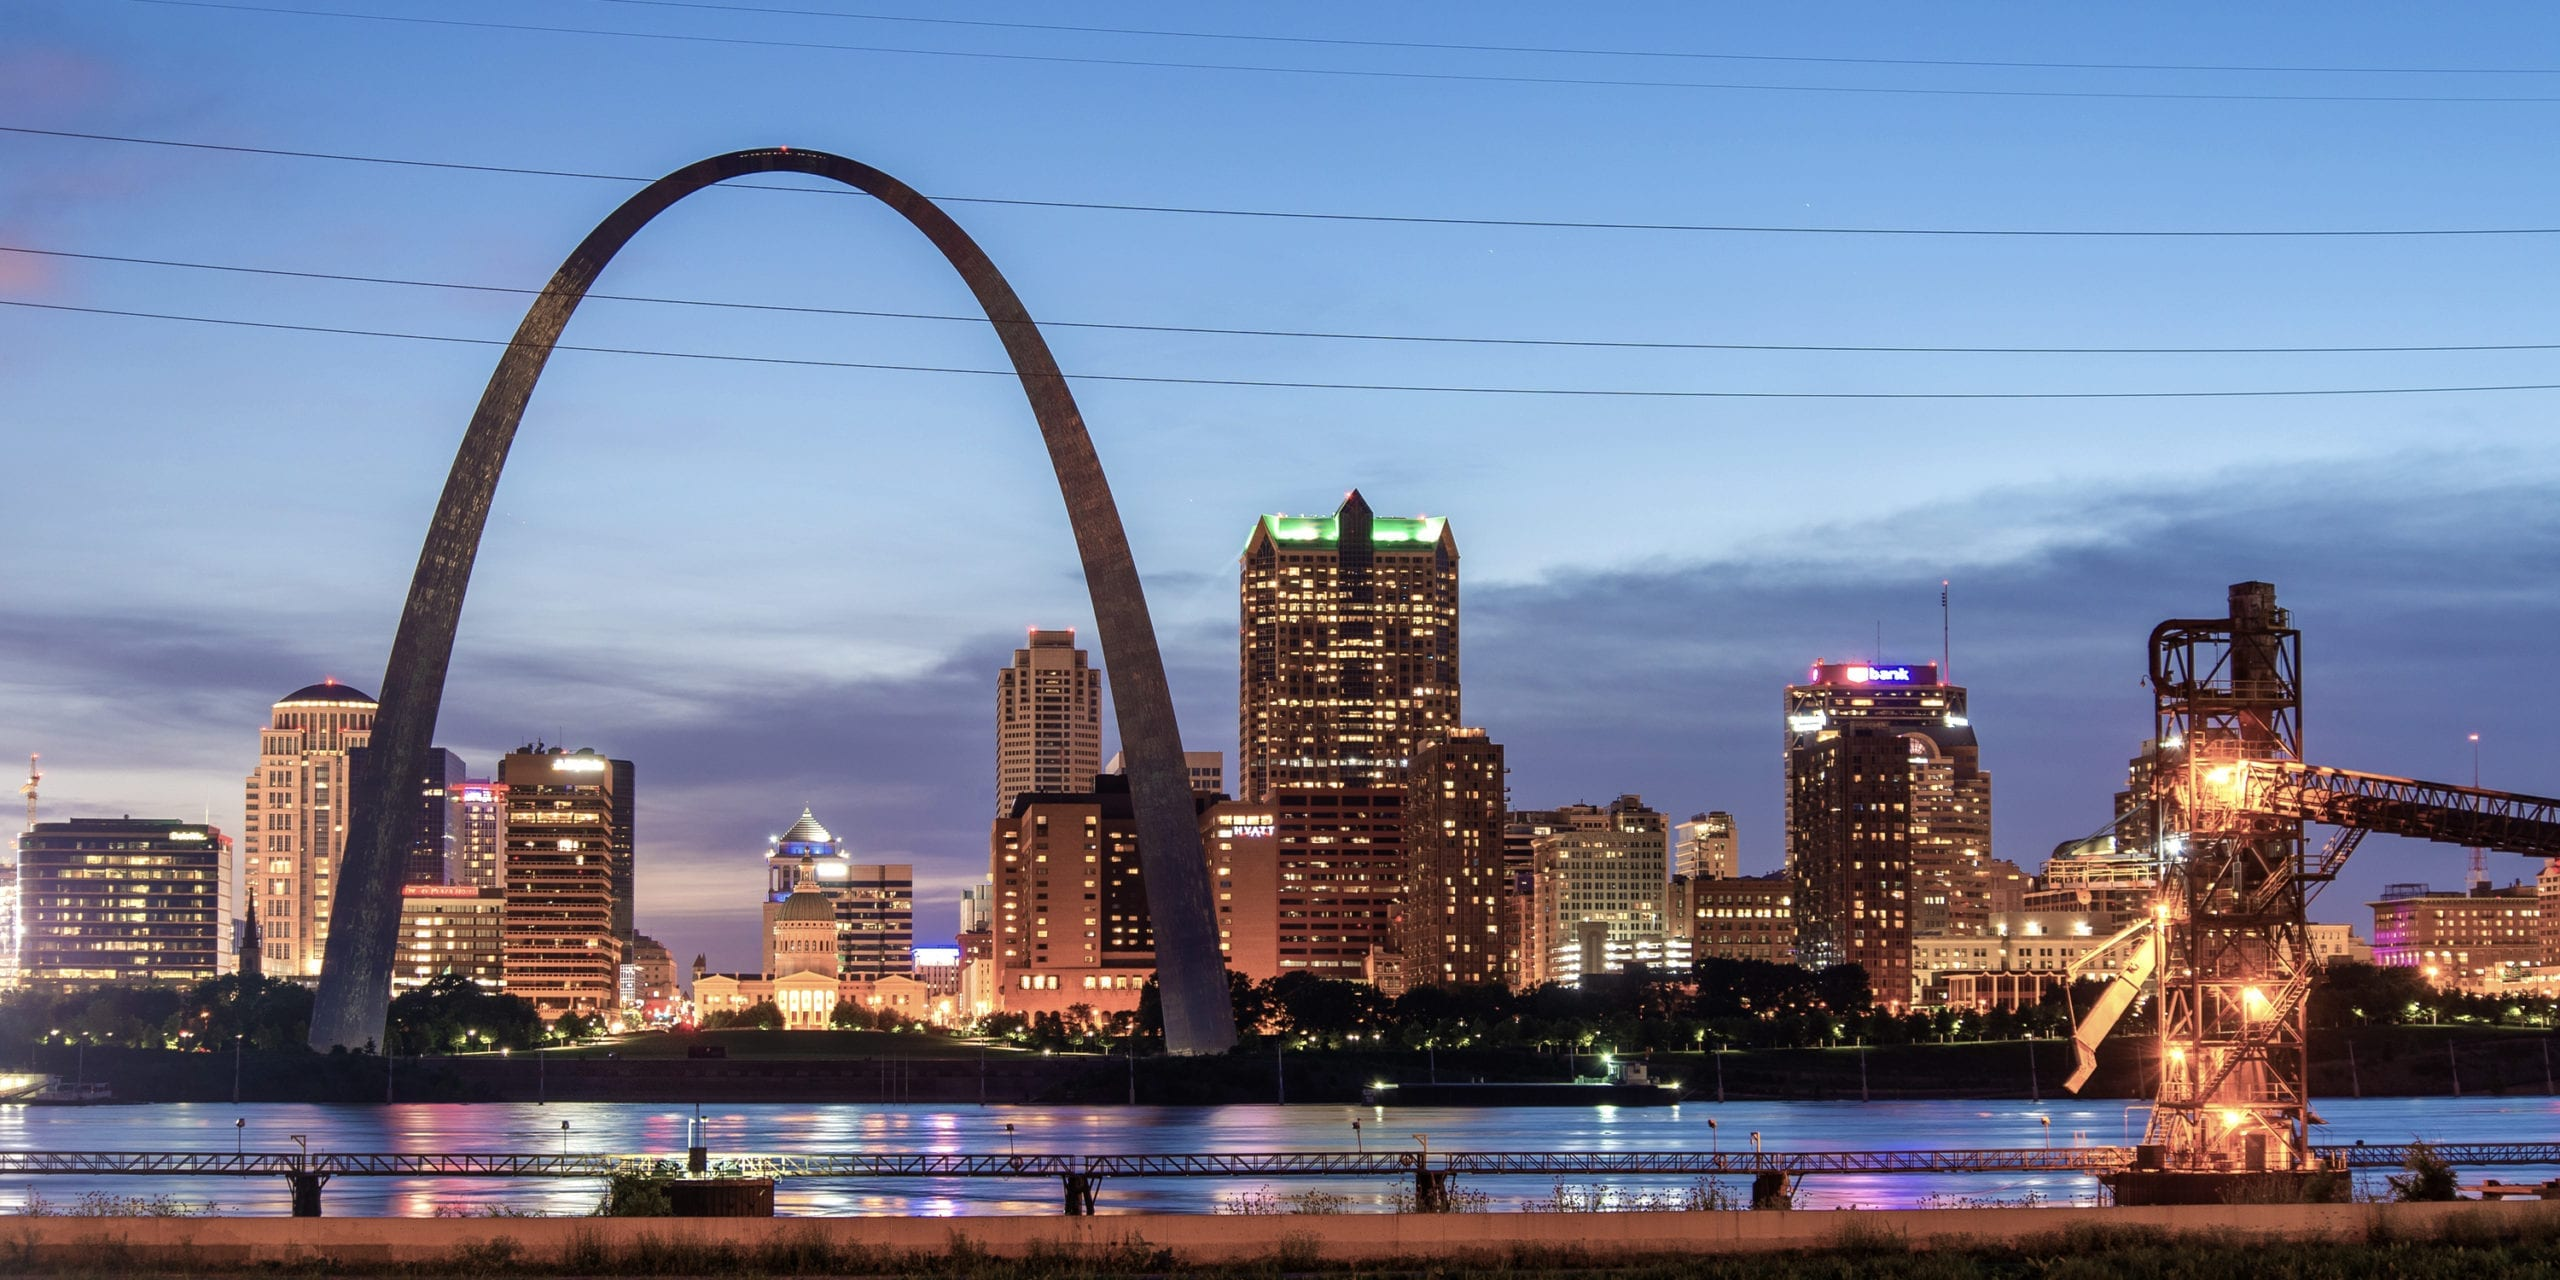 St. Louis riverfront and skyline. Photo by Flickr user Jim Bauer.